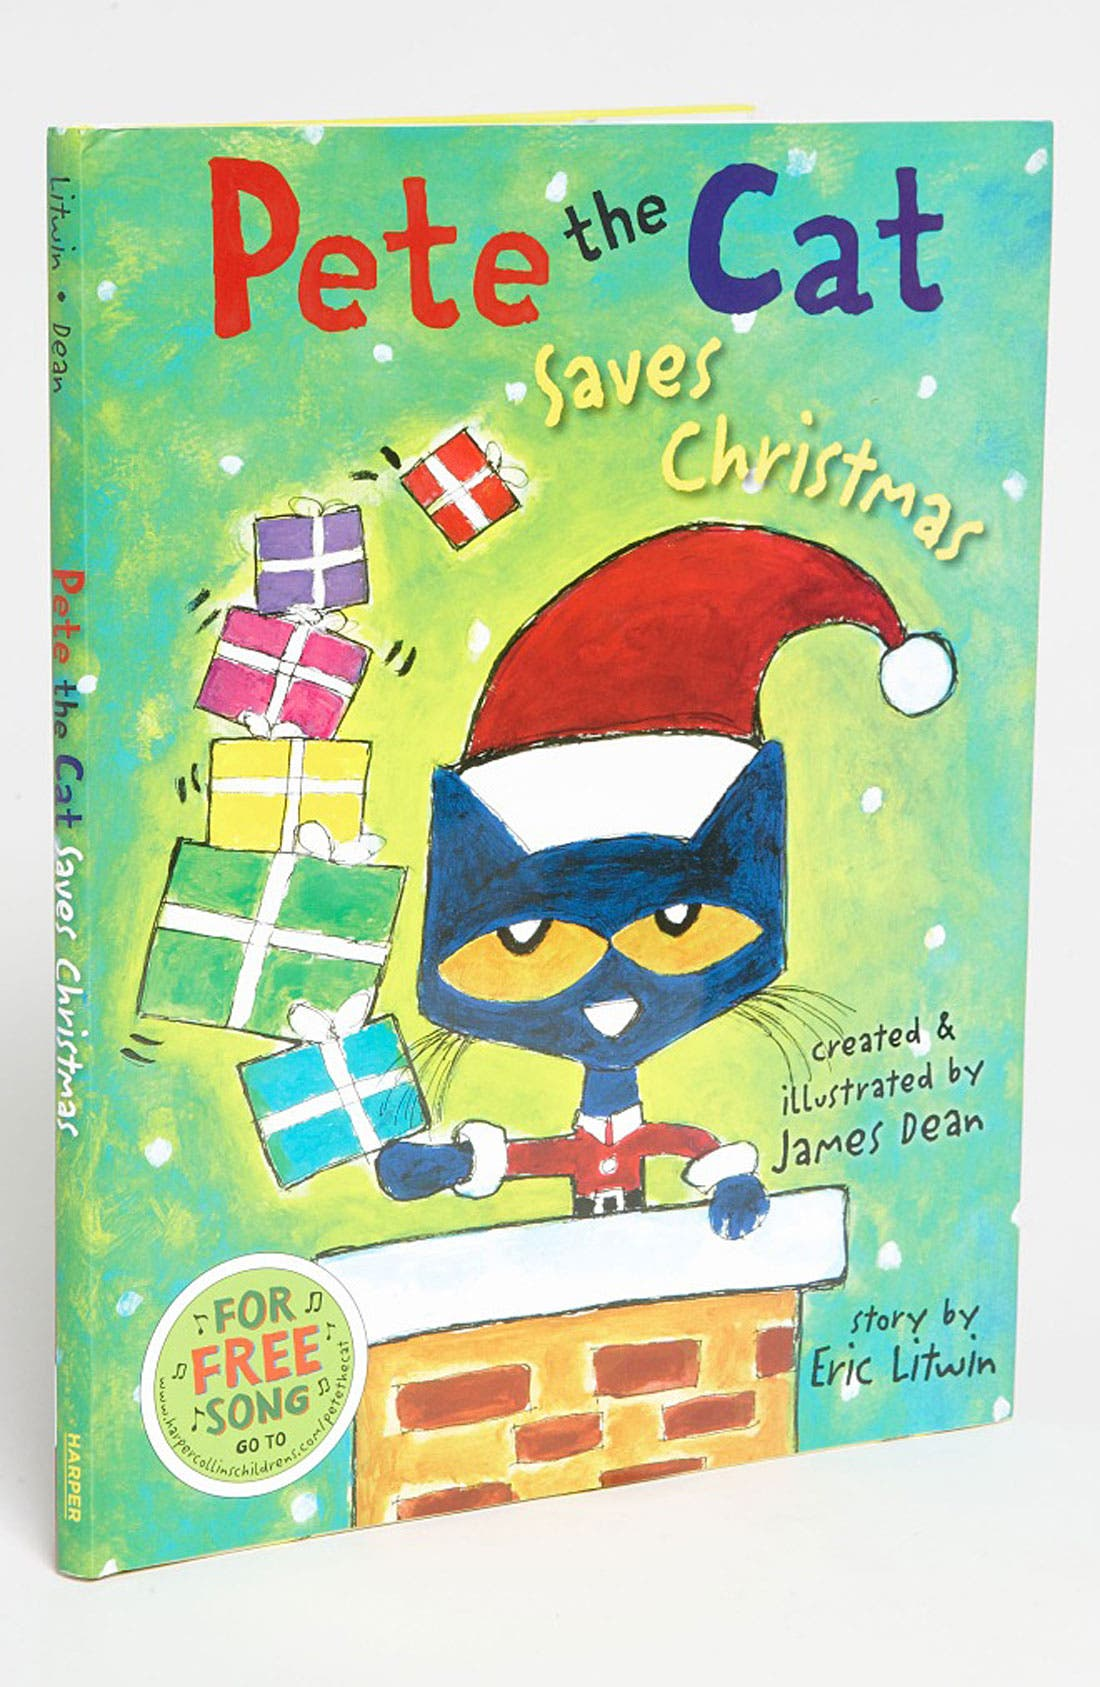 Alternate Image 1 Selected - James Dean & Eric Litwin 'Pete the Cat Saves Christmas' Story Book